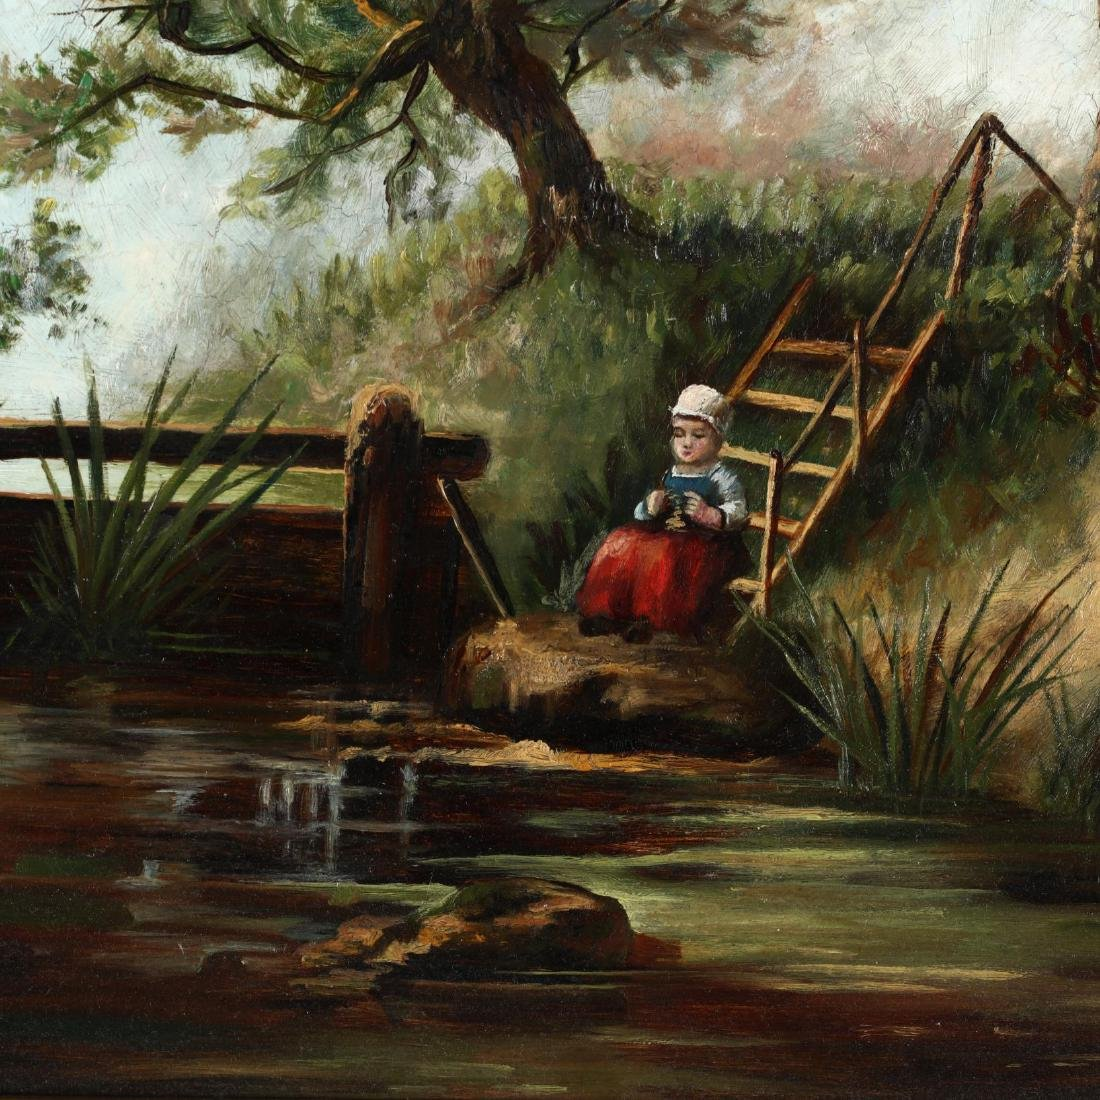 A Victorian Painting of a Child by a River Bank - 2